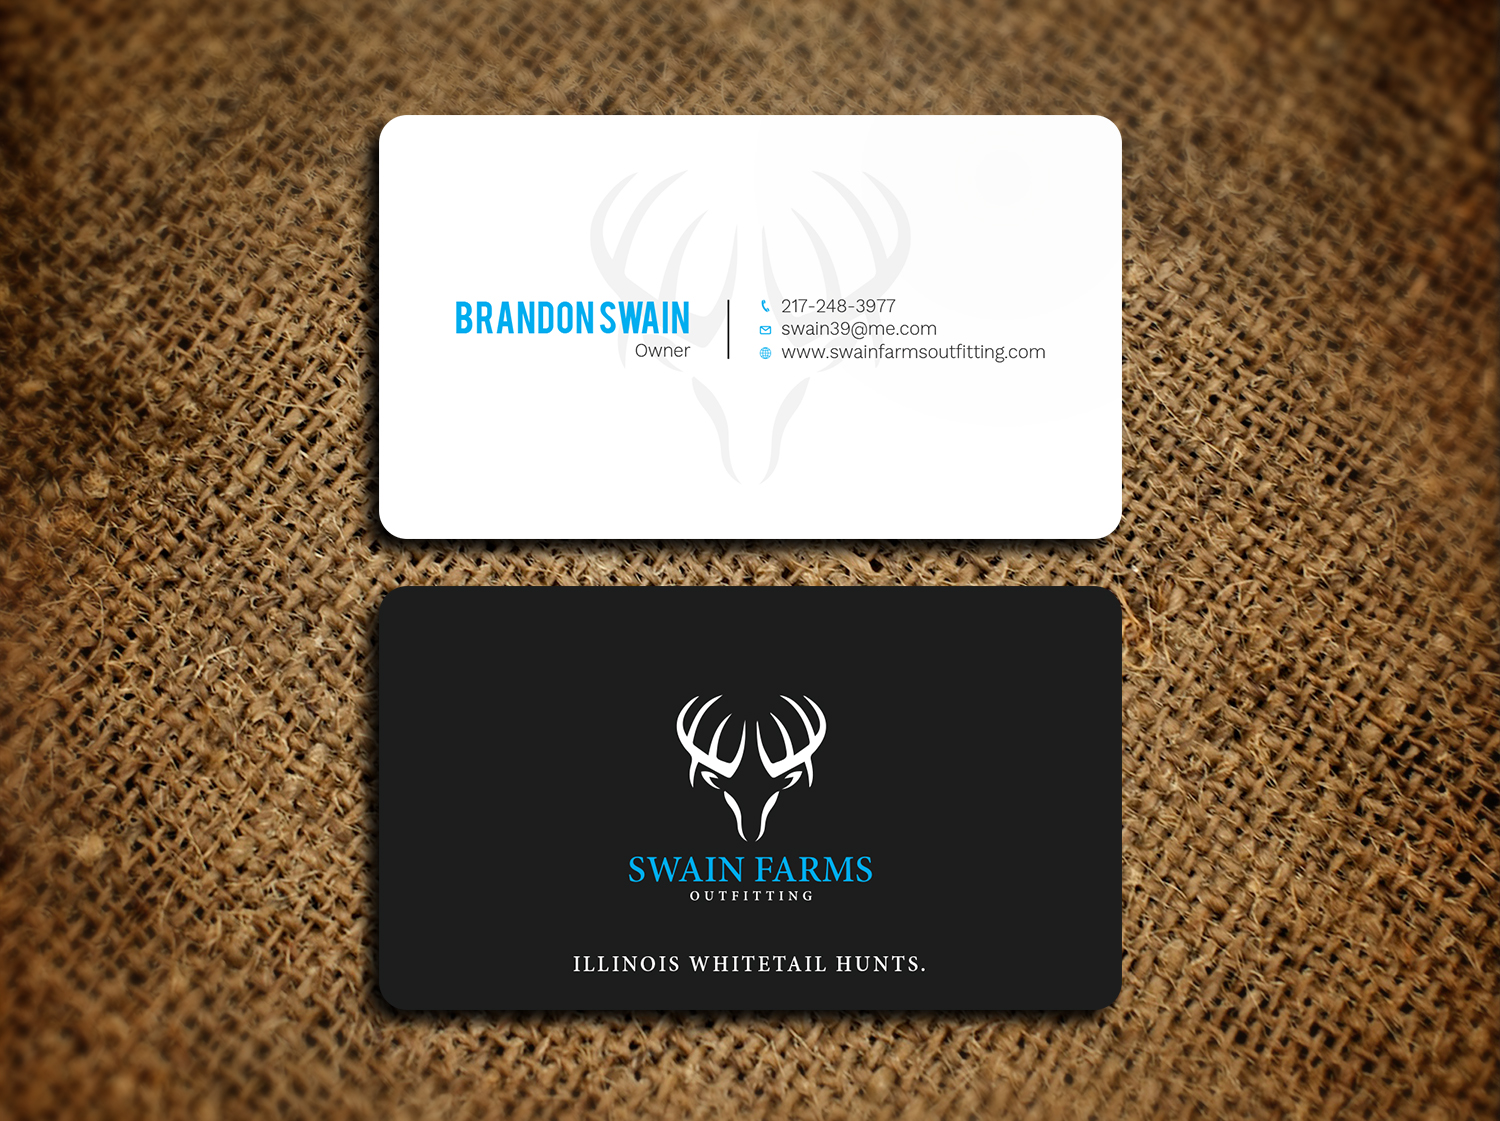 Modern professional hunting business card design for a company by business card design by avanger000 for this project design 17461157 colourmoves